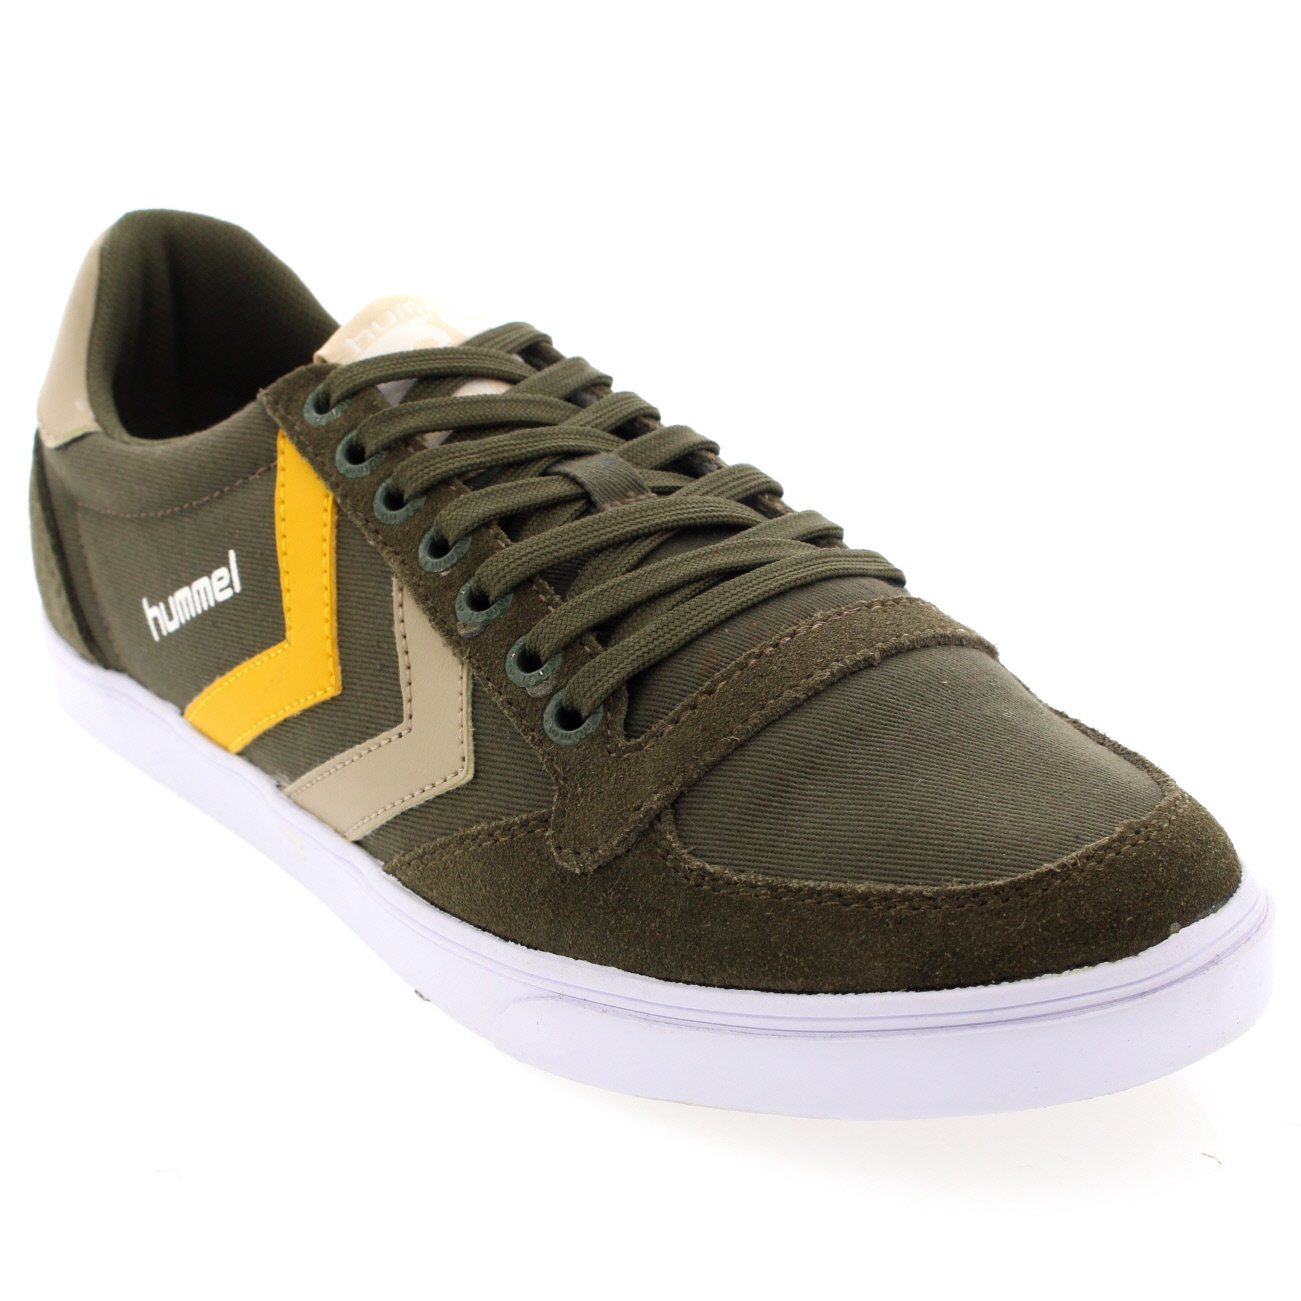 Hummel Slimmer Stadil Low Top